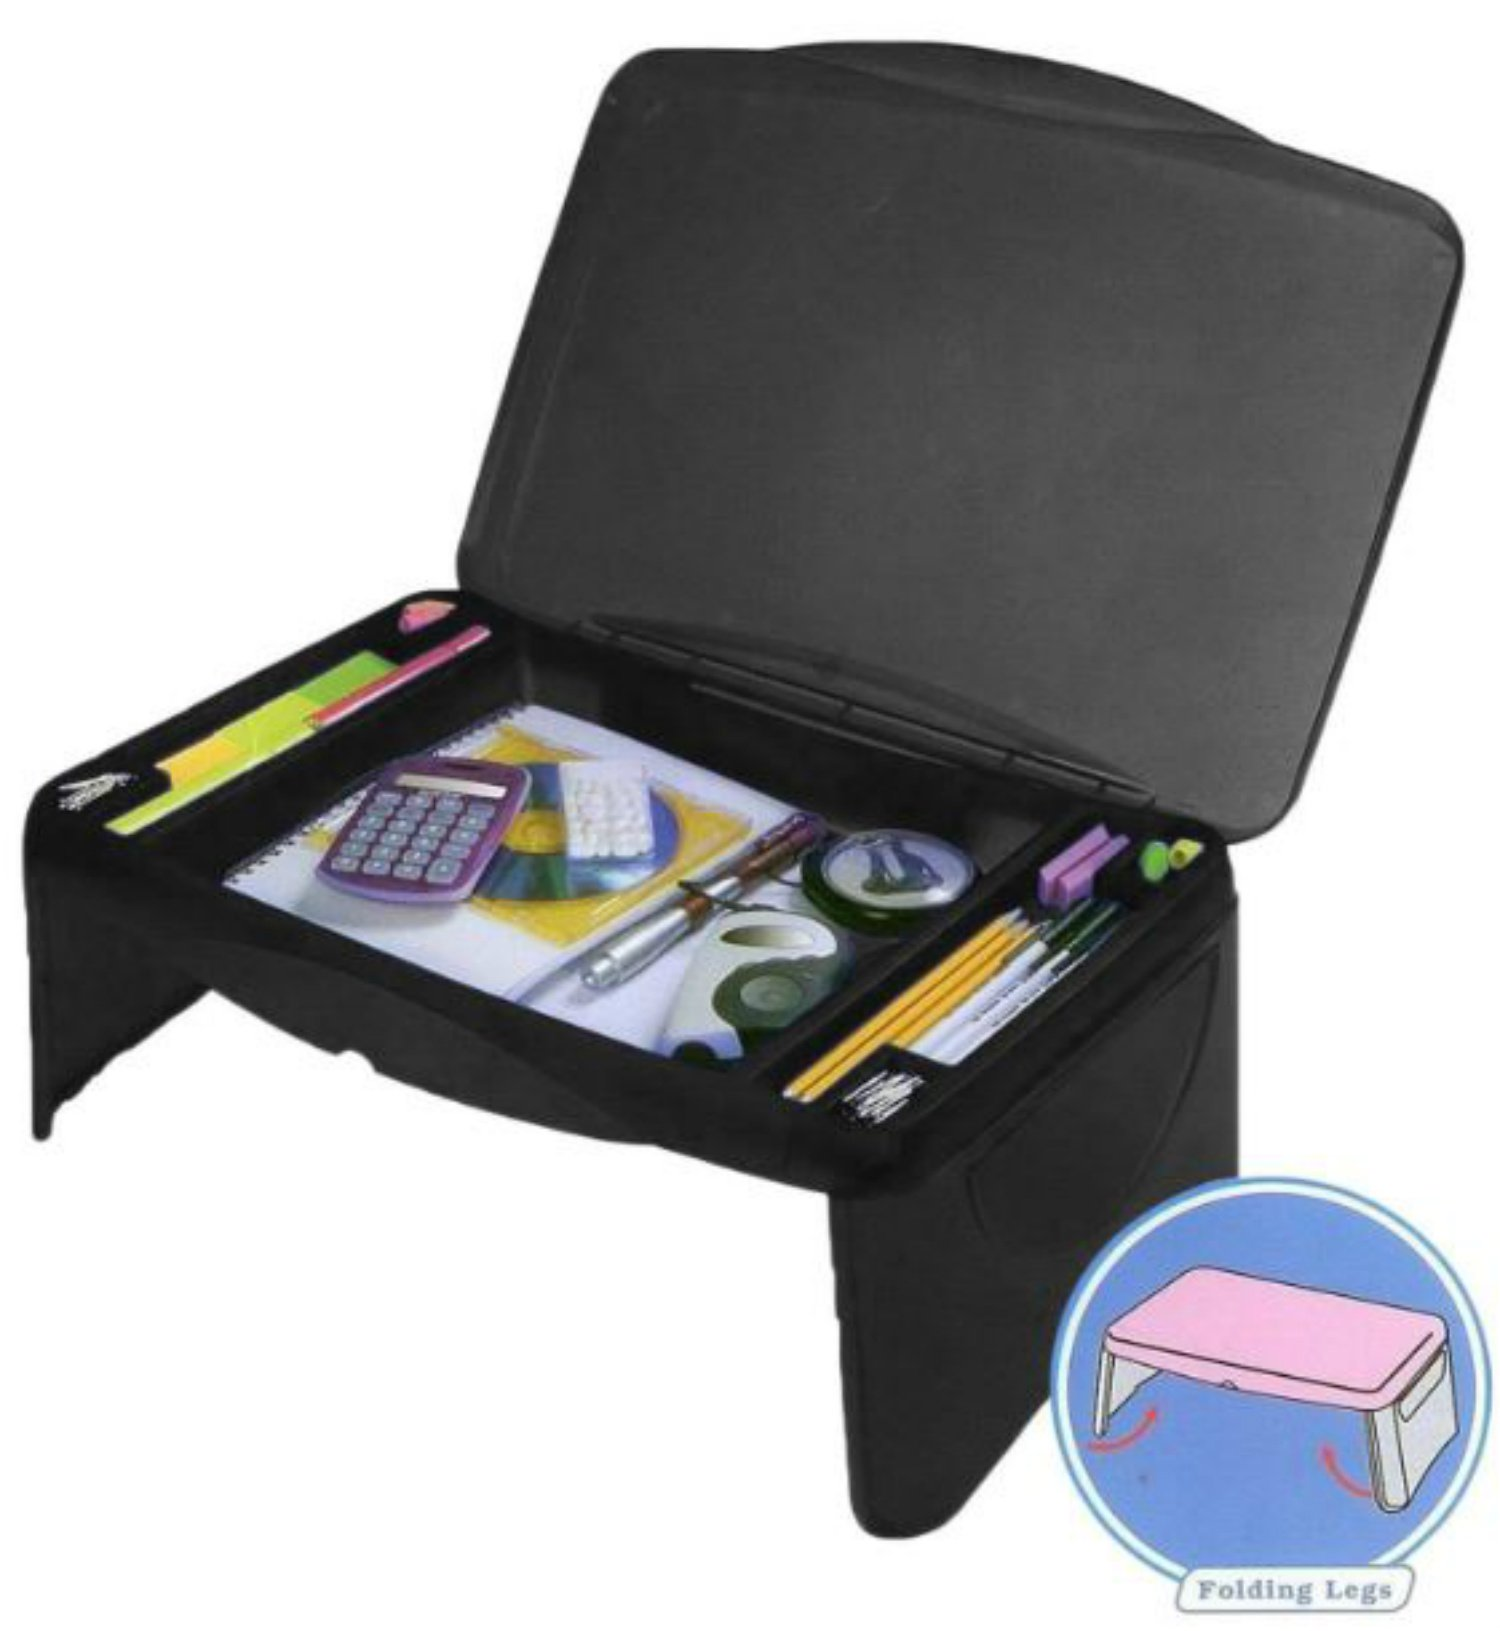 Kids Folding 17'' x 11'' Lap Desk with Storage - Black - Durable Lightweight Portable Laptop Computer Children's Desks for Homework or Reading. Breakfast Tray Food Table